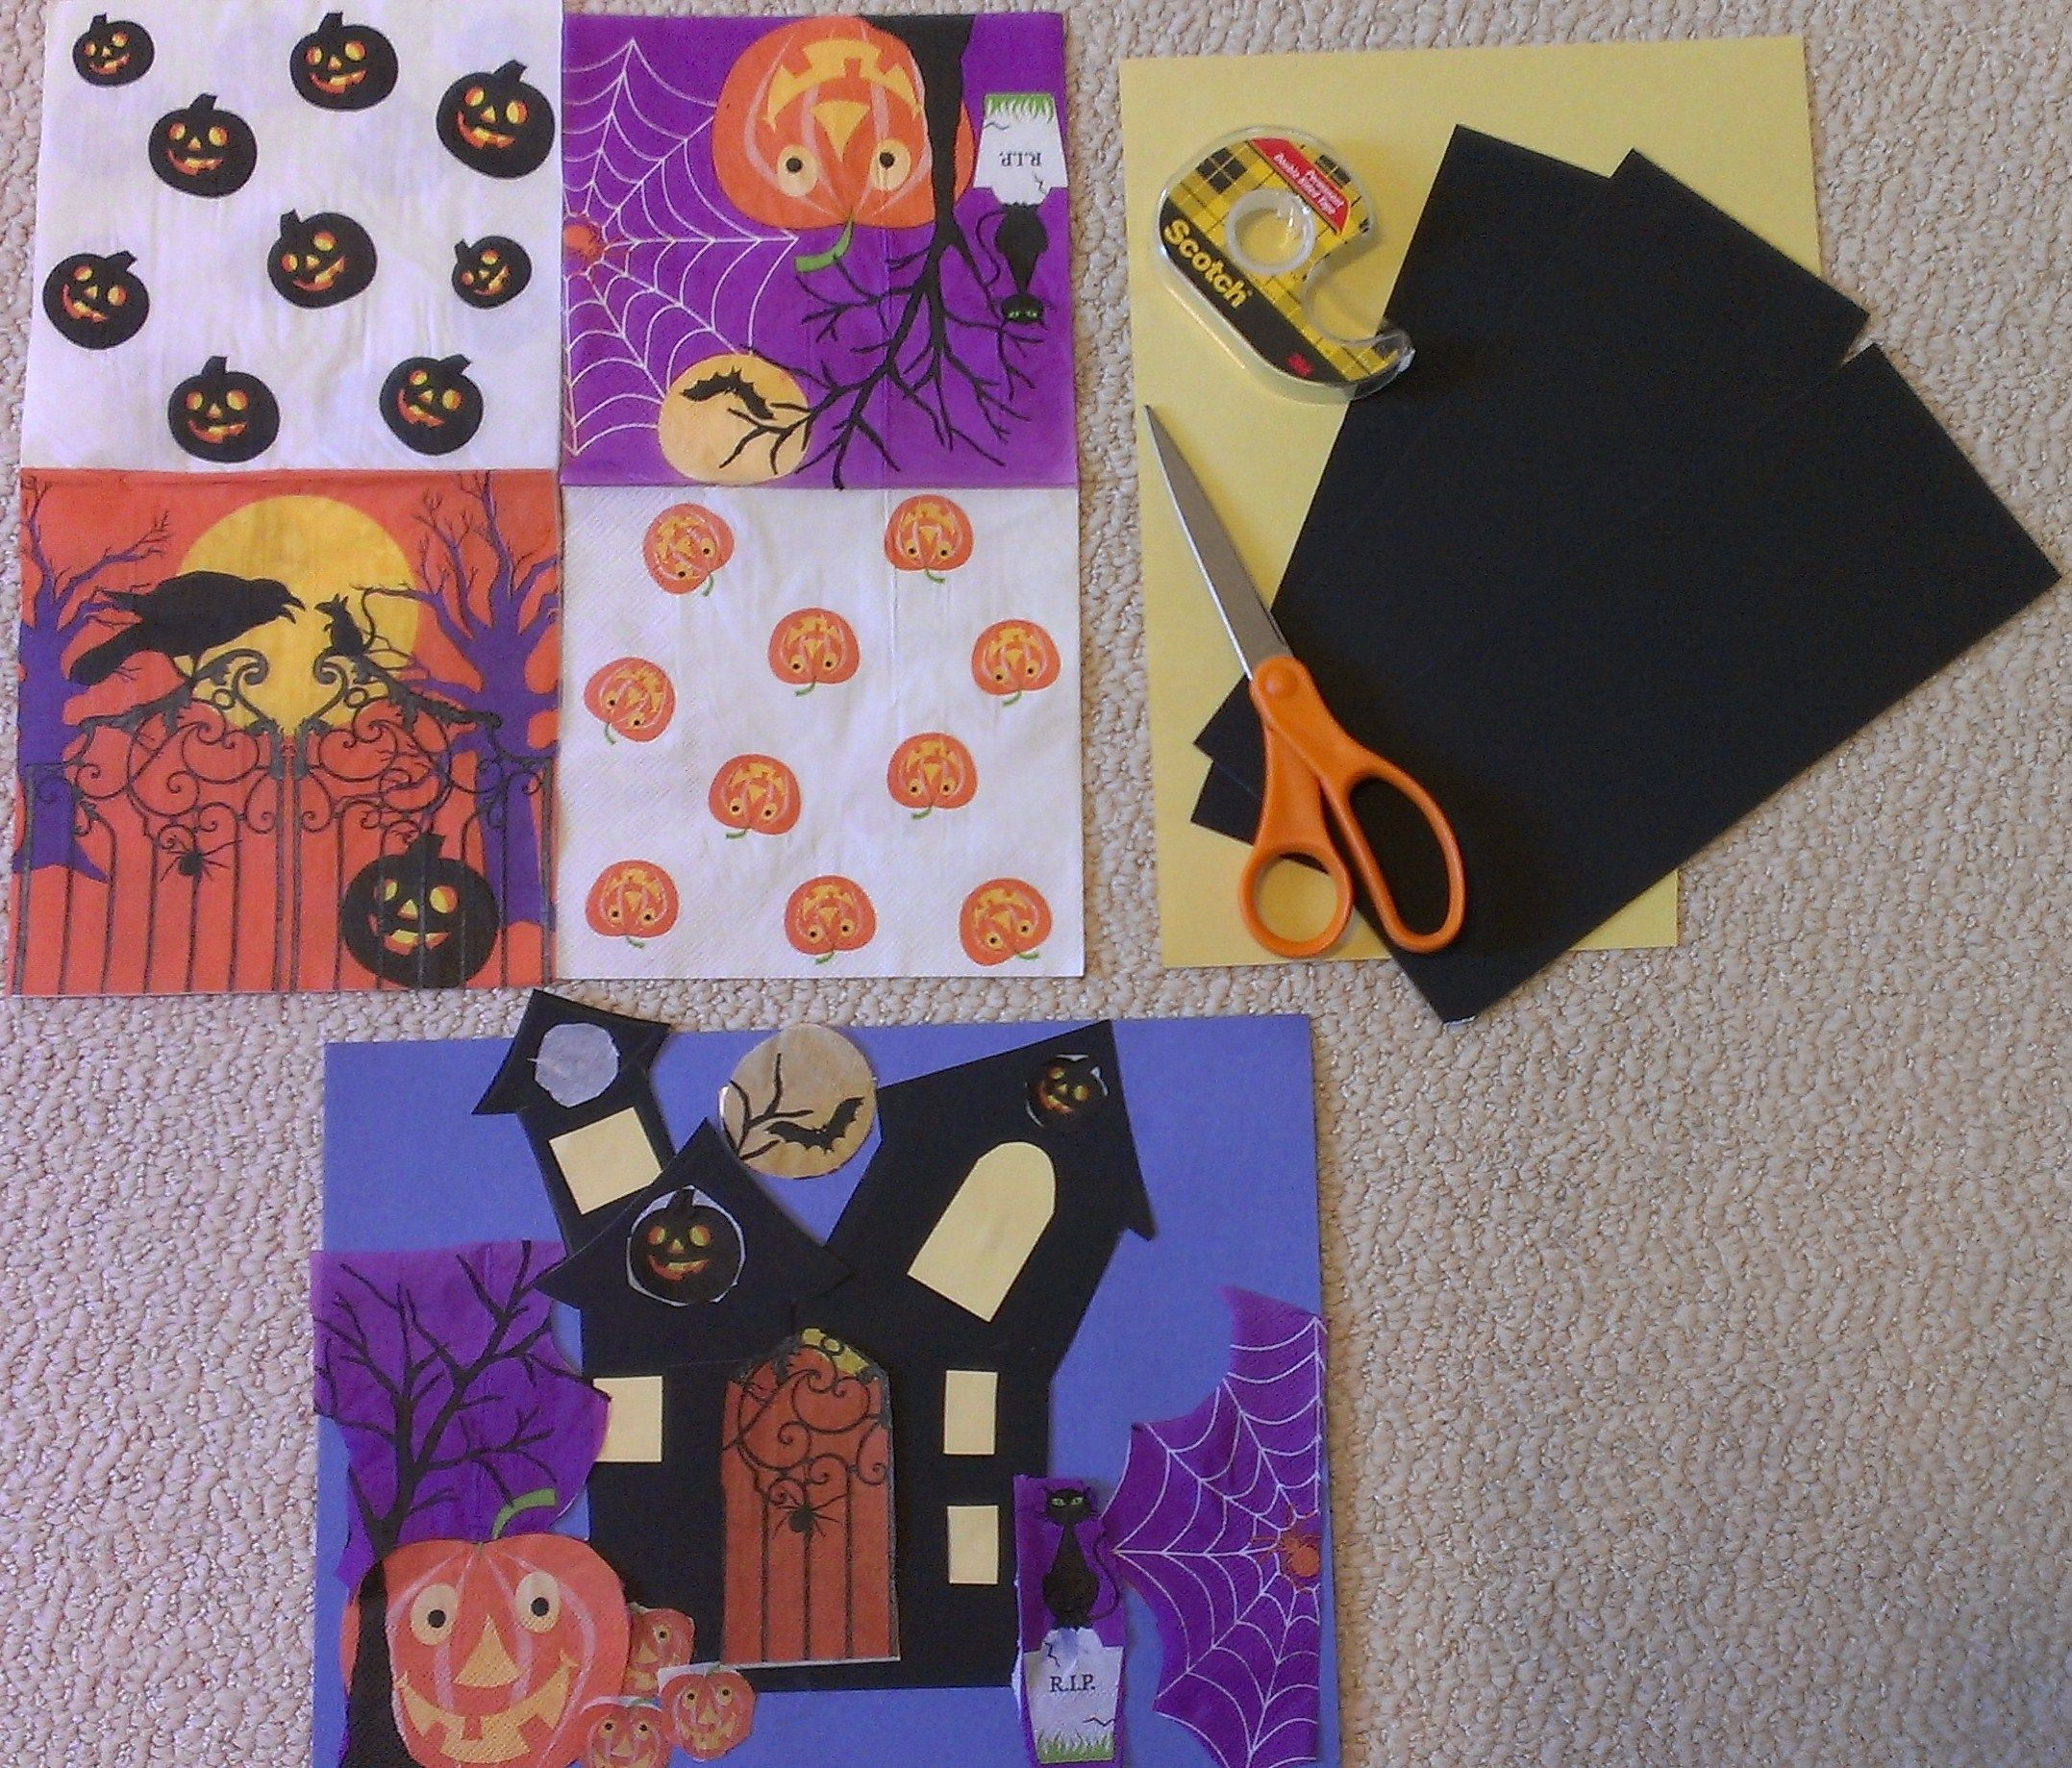 Haunted house collage.Easy and inexpensive Halloween craft for kids. Perfect for classroom party craft. All you need is a Halloween theme paper napkins from dollar store and black card stock for haunted house cutout. Use bright yellow or orange  construction paper scraps for making doors and windows. Cut out parts from the paper napkin and use only glue stick to fix the tissue paper cutouts and create one of a kind haunted house scene. #Halloween craft.